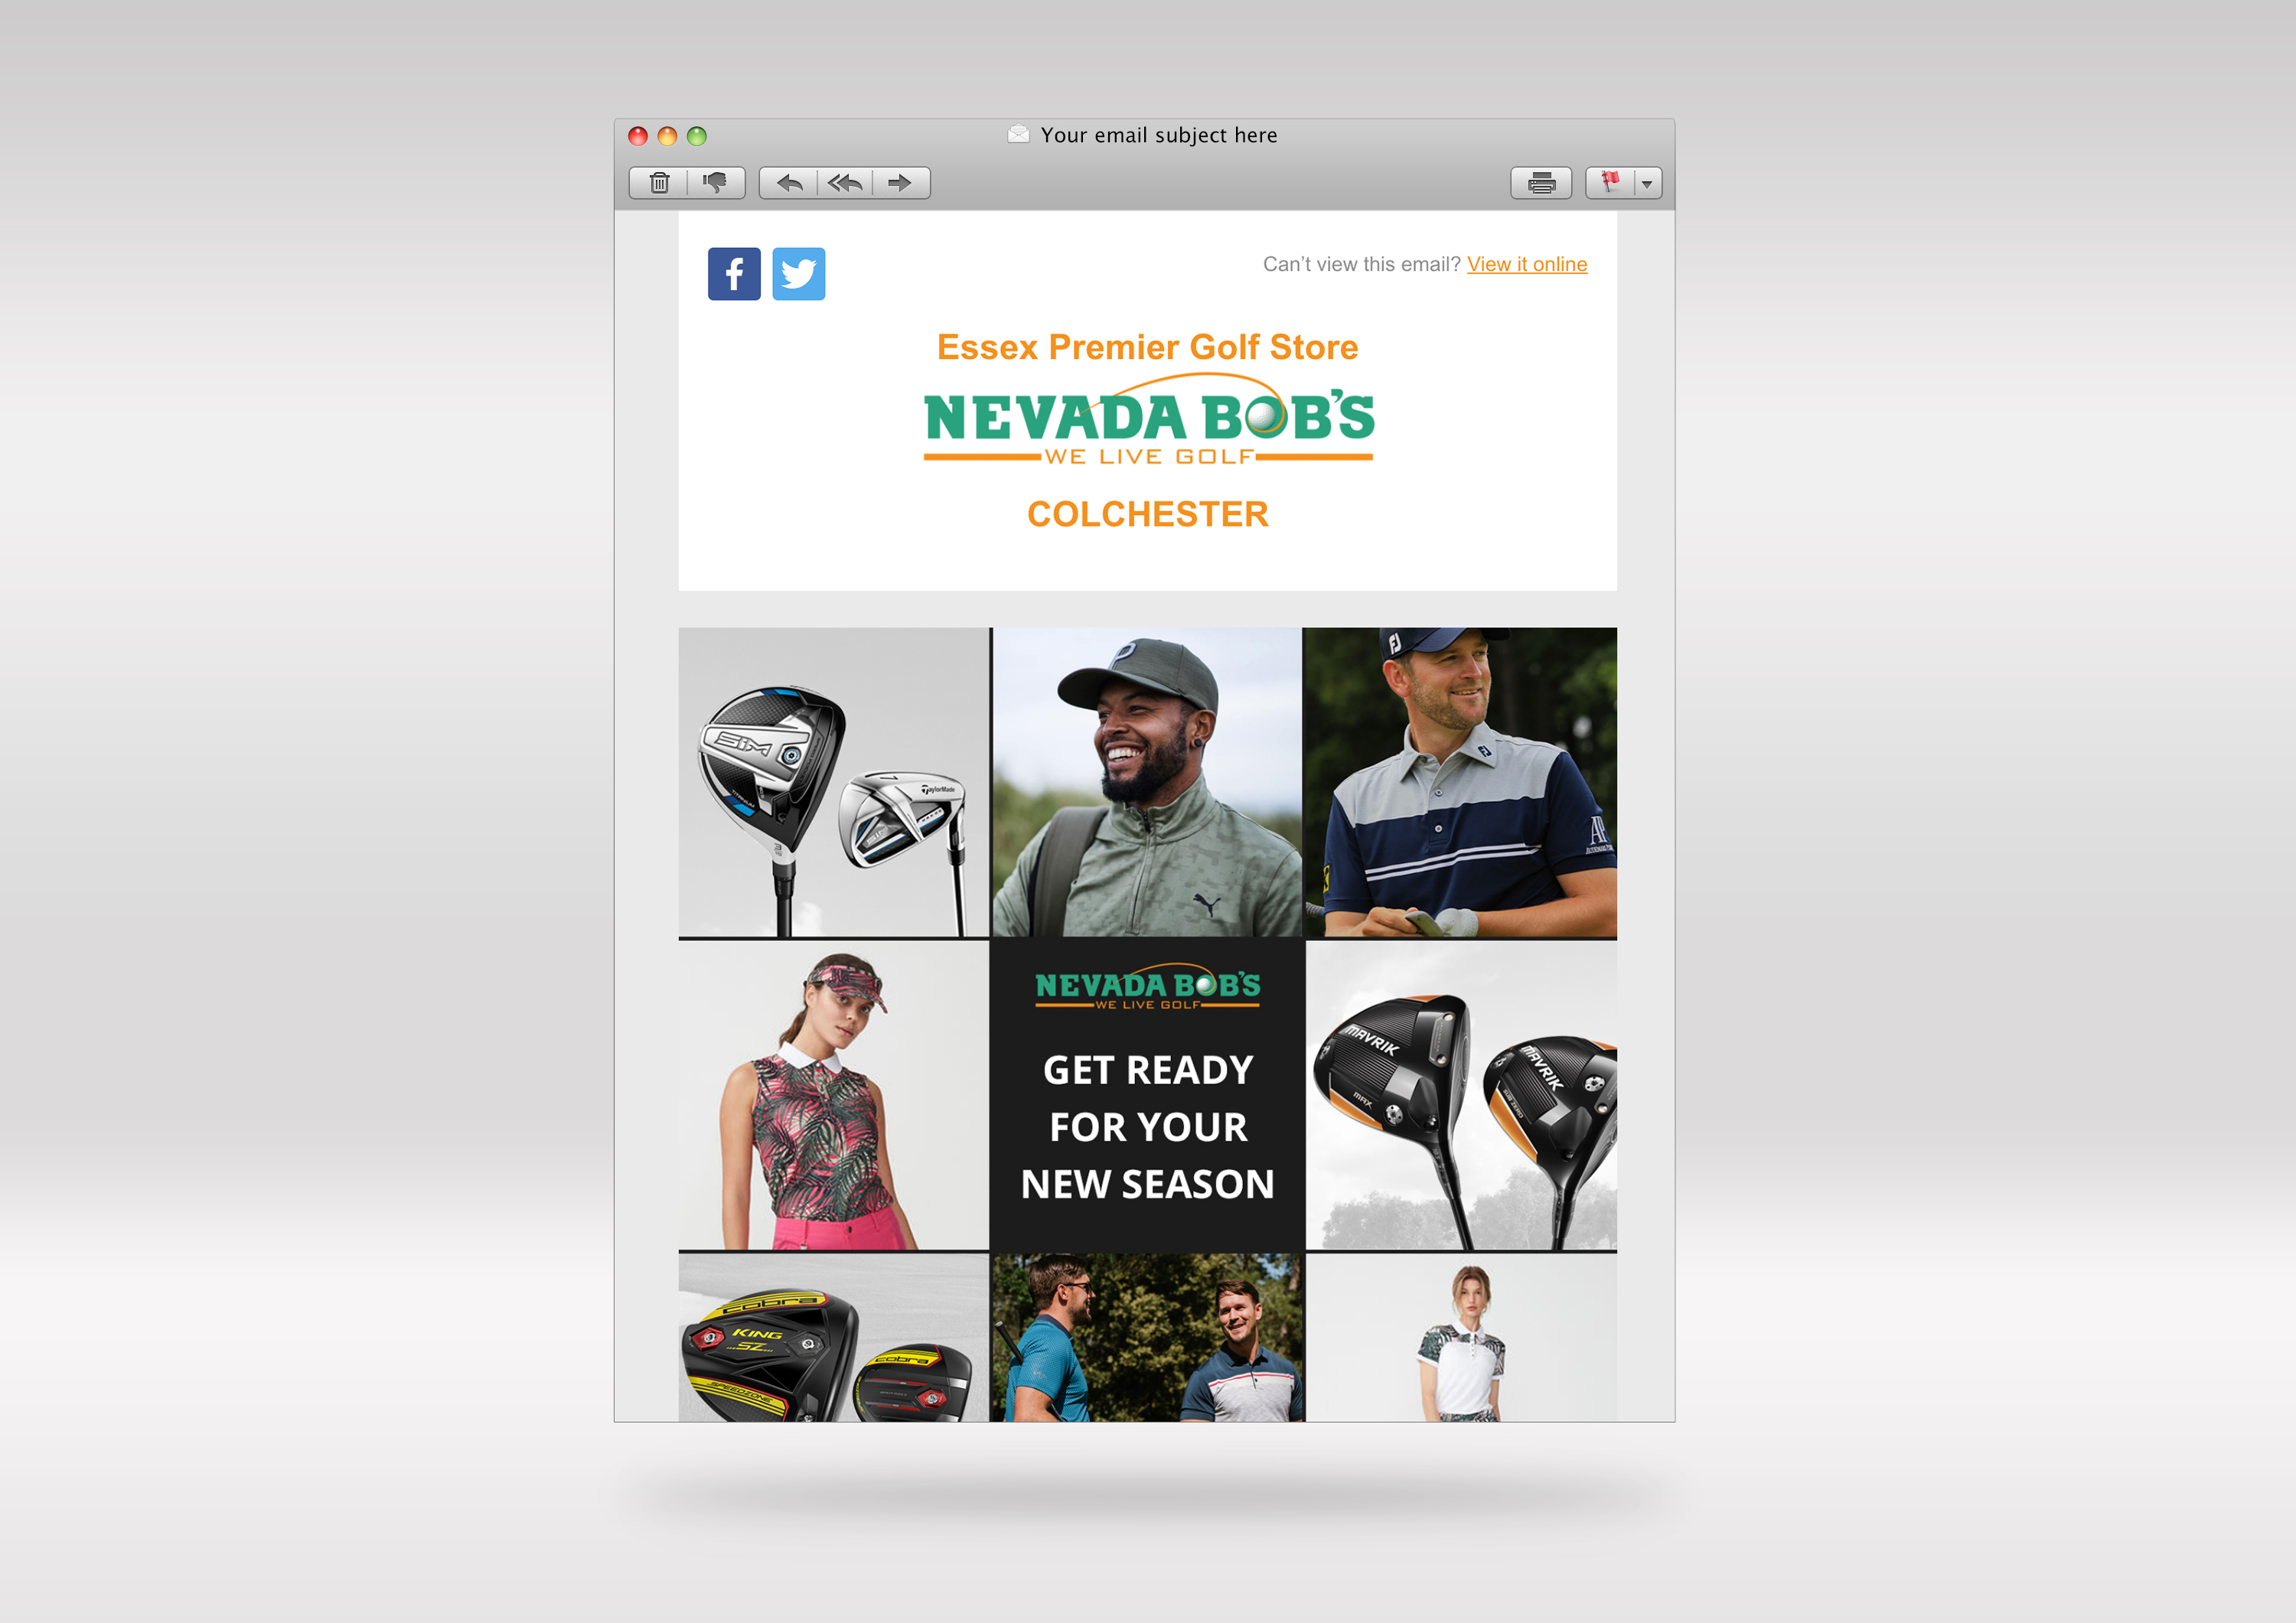 Nevadabobs-email